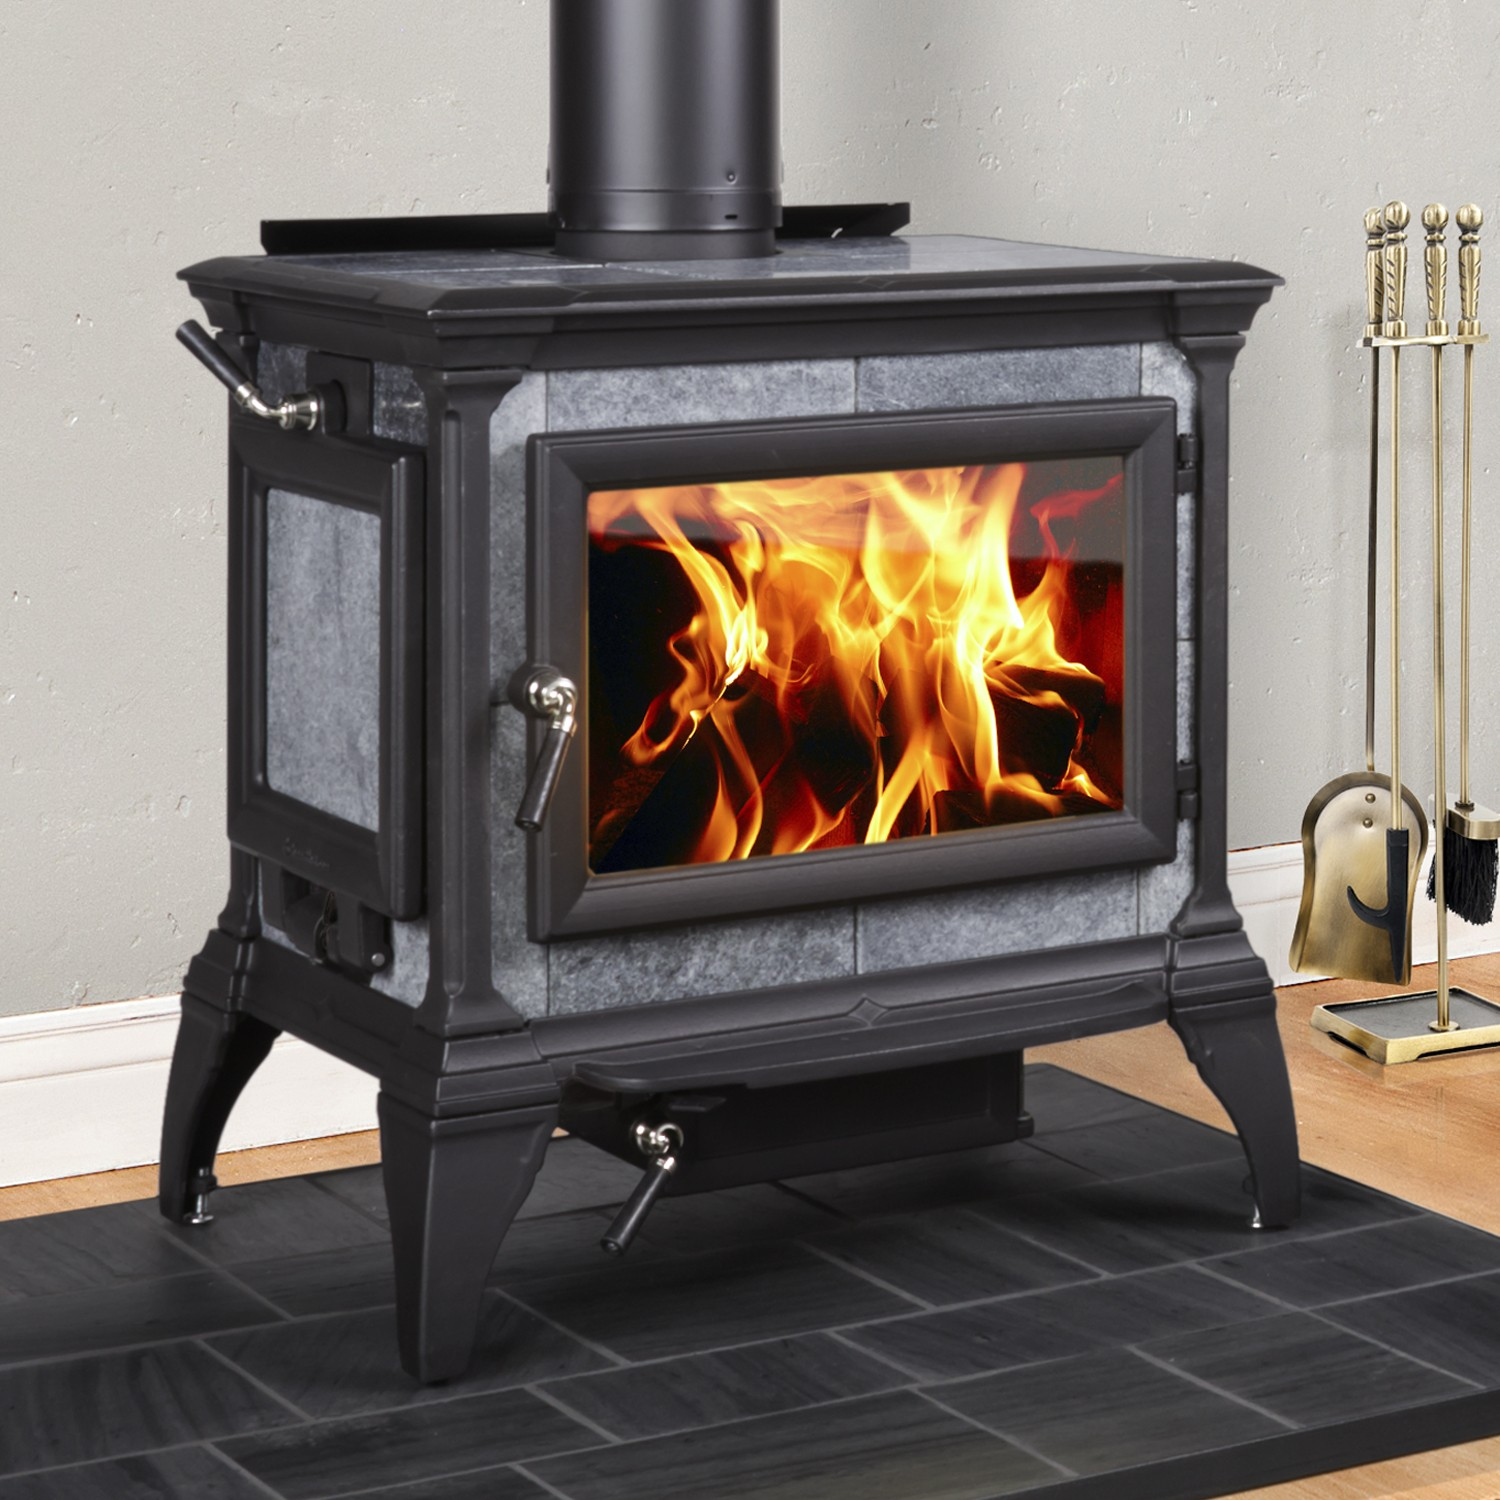 hello aqua specials sale and fireplace quip fall sales